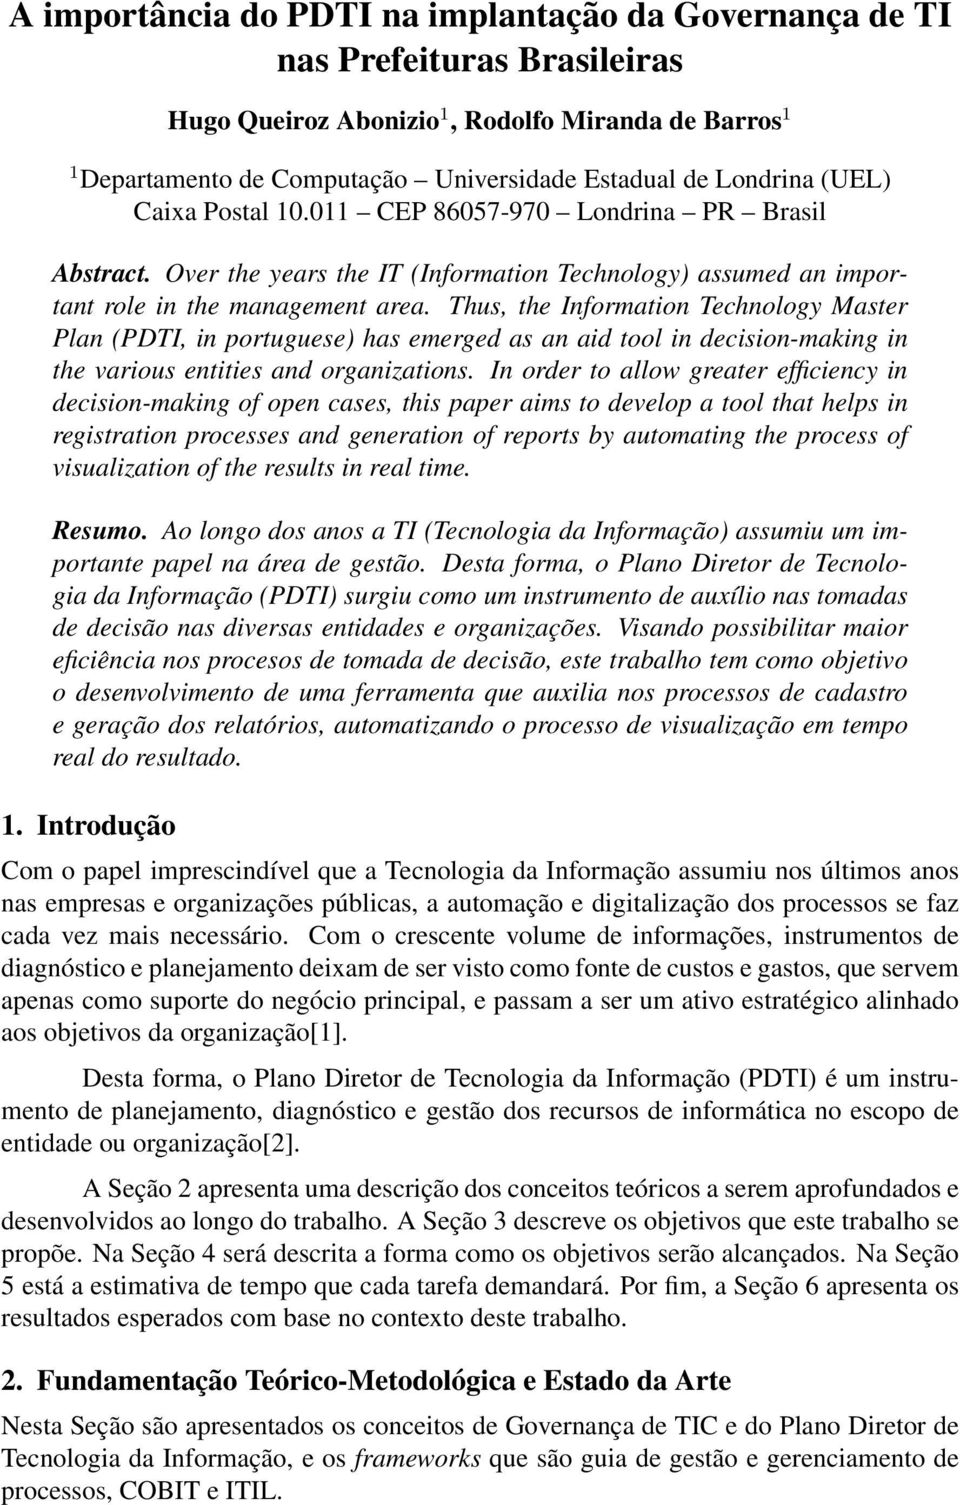 Thus, the Information Technology Master Plan (PDTI, in portuguese) has emerged as an aid tool in decision-making in the various entities and organizations.